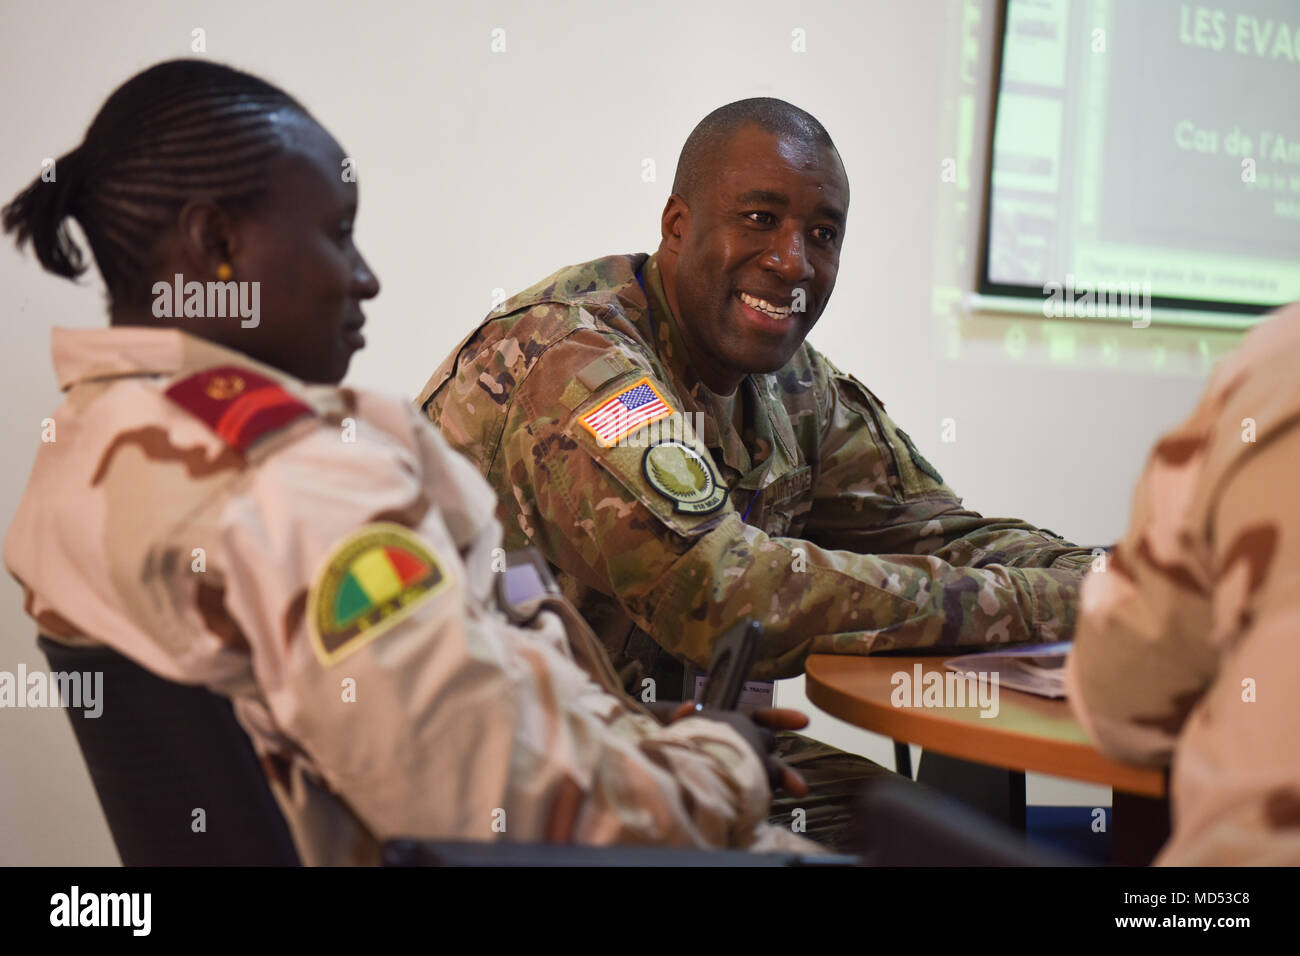 Capt. Malick Traore, 818th Mobility Support Advisory Squadron aeromedical evacuation project manager, discusses principles of altitude physiology and stresses of flight with a Malian chief of medical operation during African Partnership Flight Senegal, March 20, 2018. Partnership flights are U.S. Air Forces Africa's premier security cooperation program with African partner nations to improve professional military aviation knowledge and skills. (U.S. Air Force photo by Capt. Kay Magdalena Nissen) - Stock Image